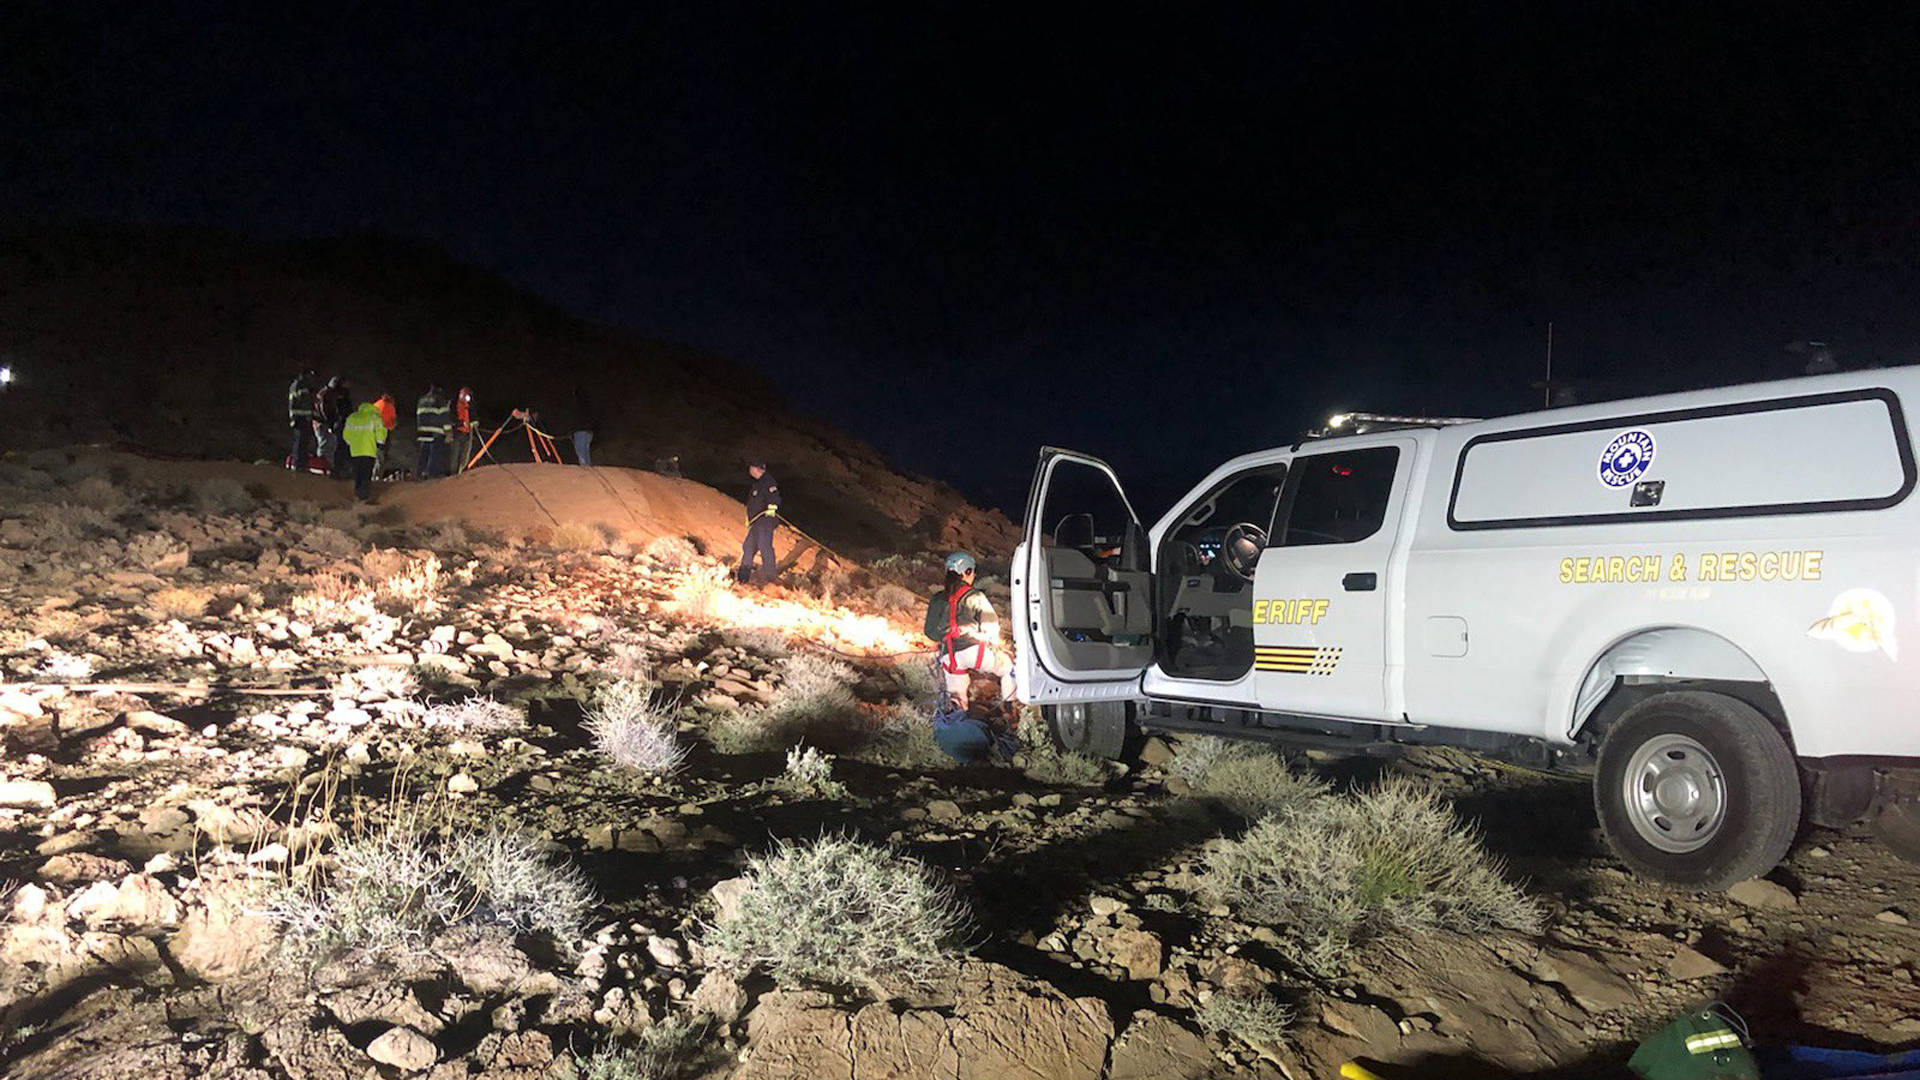 Rescuers freed a man who had fallen down a mineshaft in Death Valley on March 21, 2020. (Credit: San Bernardino County Sheriff's Department)